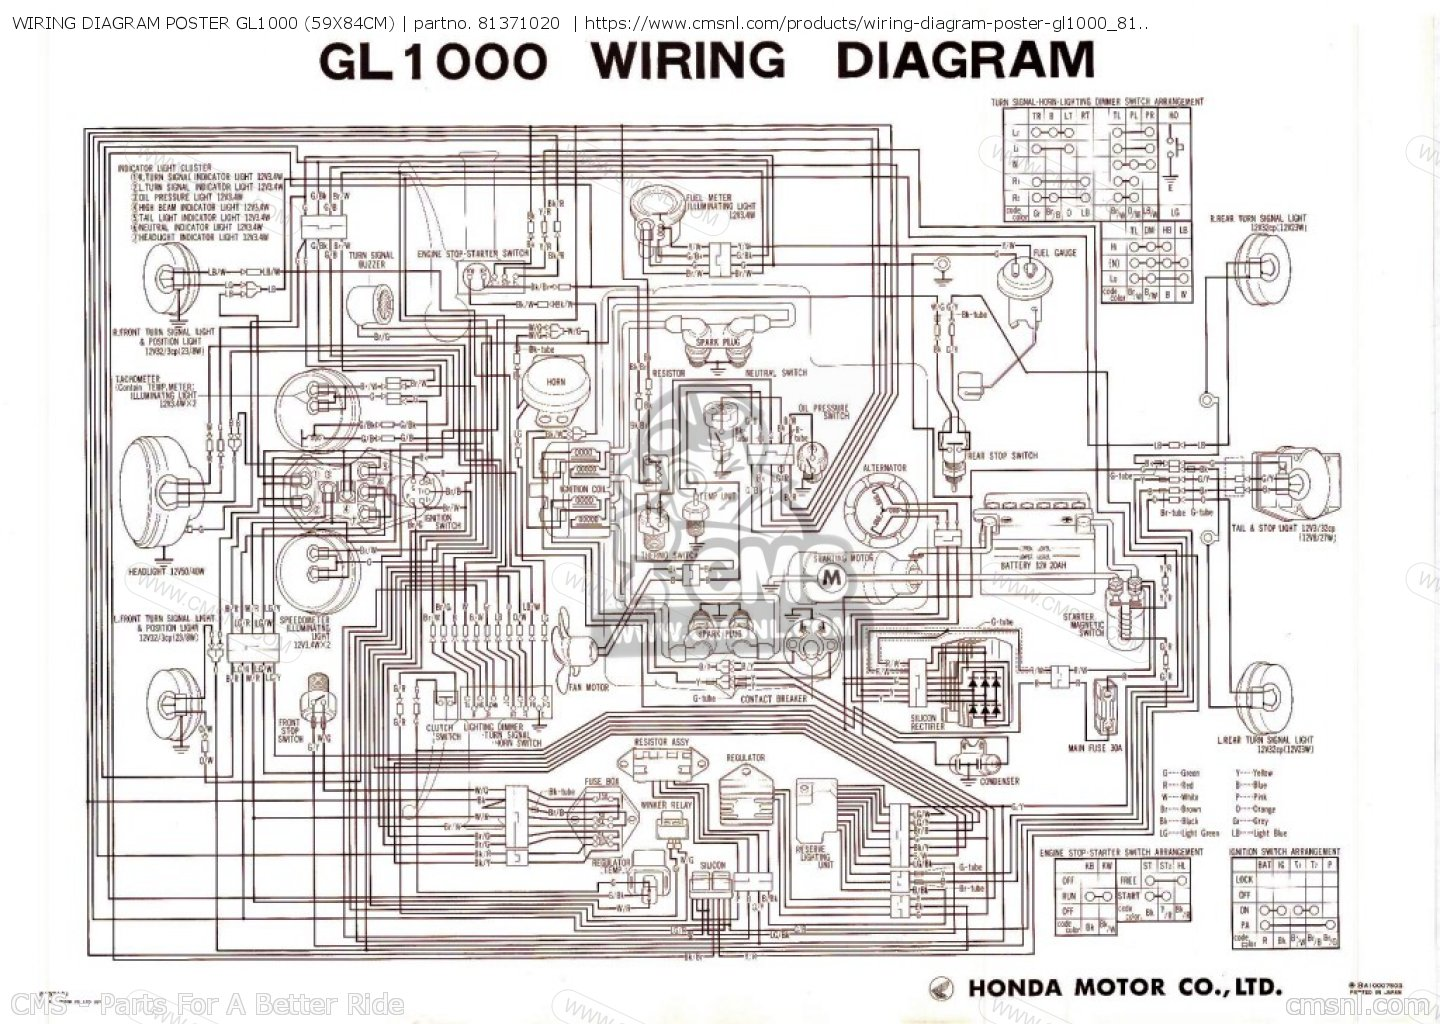 wiring diagram poster gl1000 (59x84cm) honda dream wiring diagram honda gl1000 wiring diagram #4